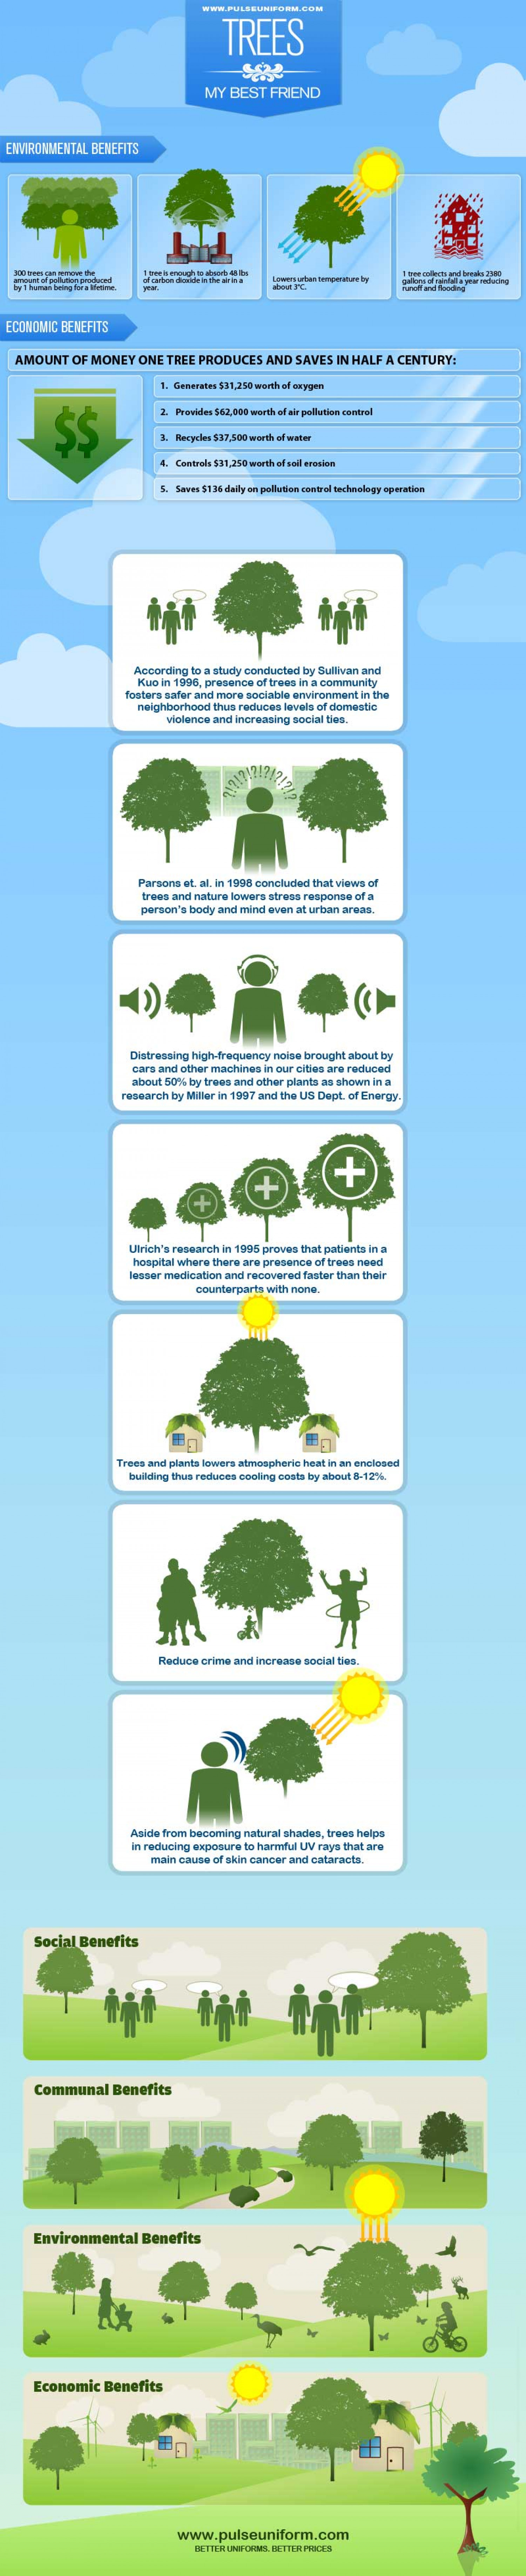 Trees Our Best Friends Infographic